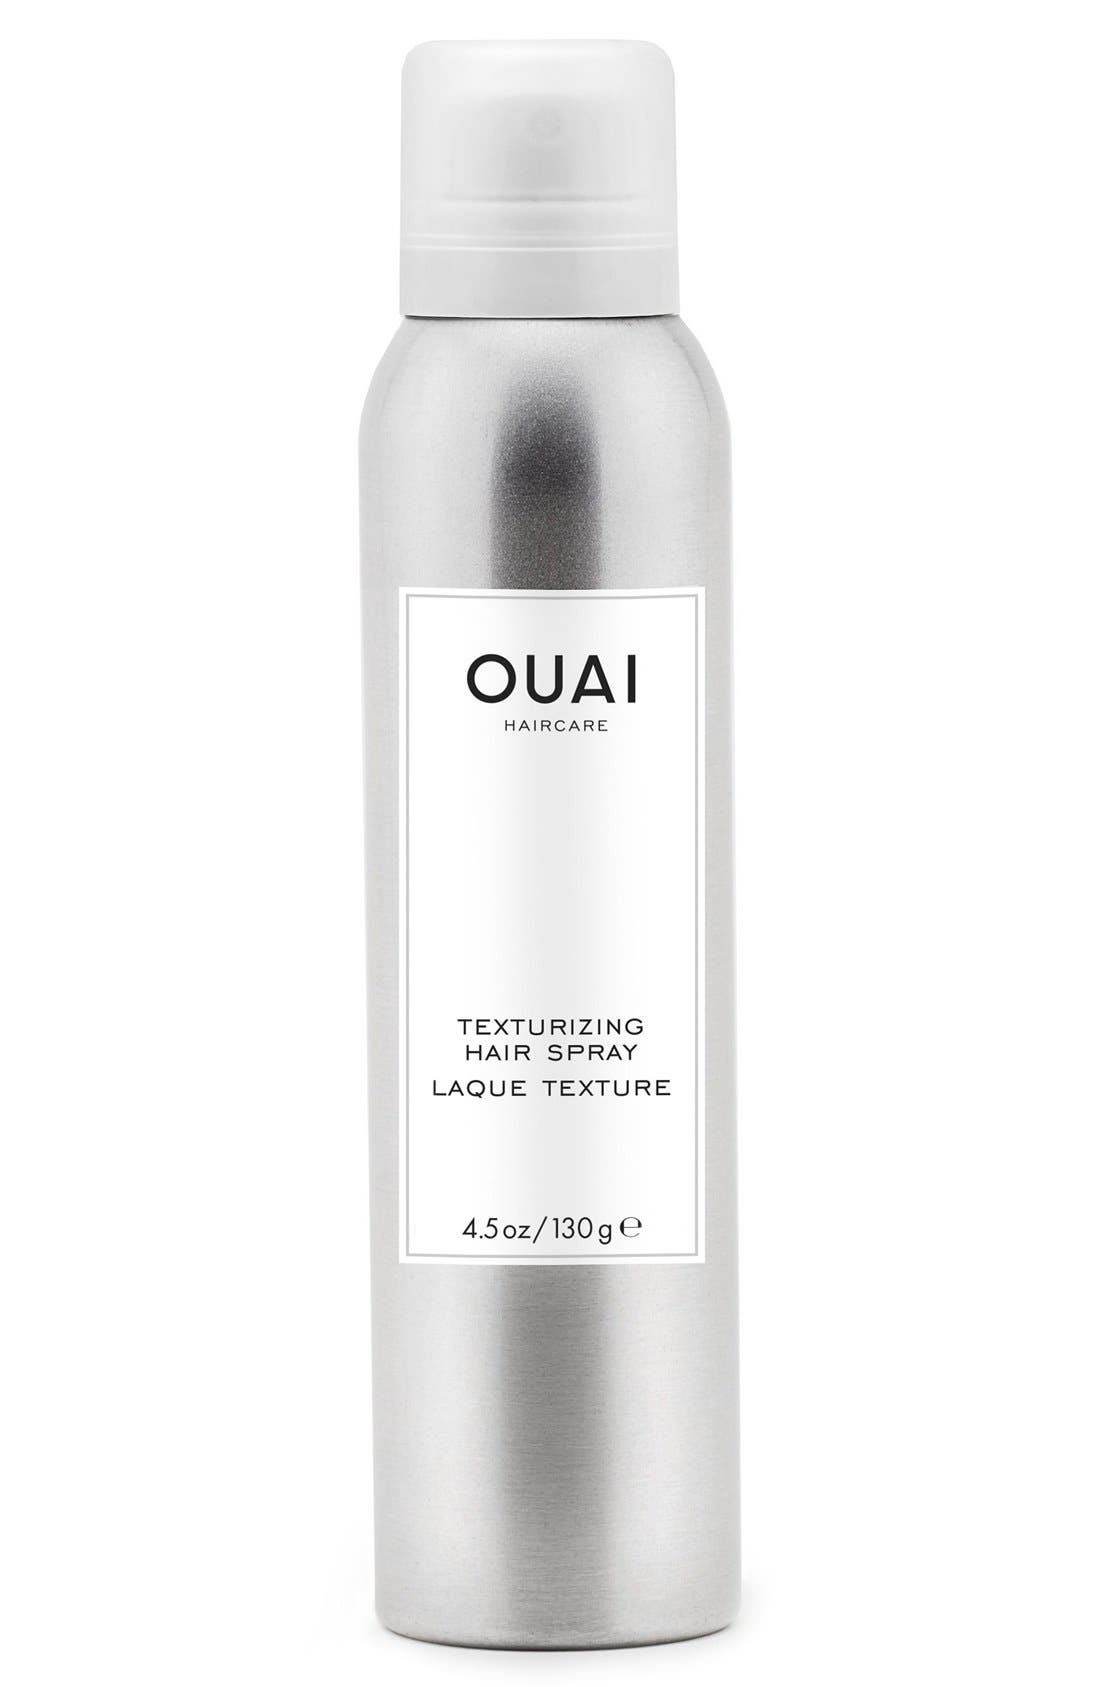 OUAI Texturizing Hair Spray